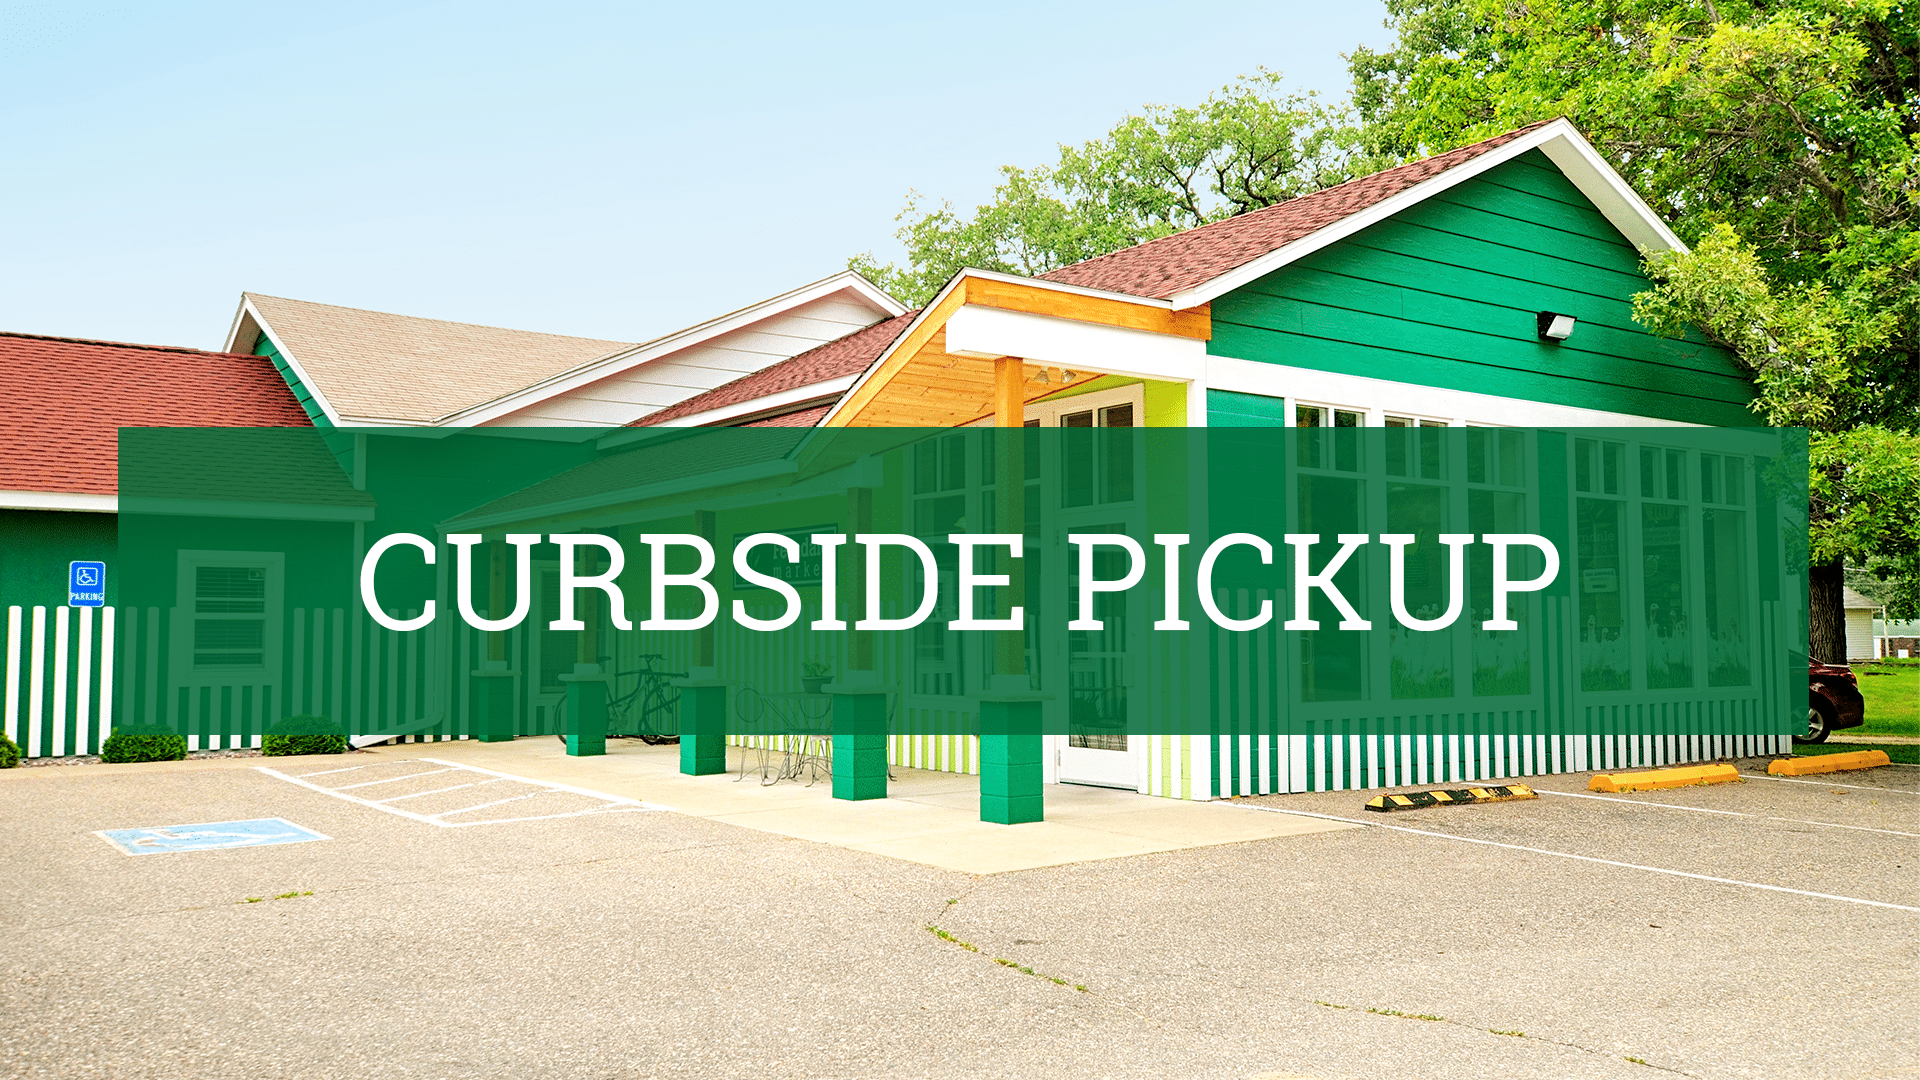 Curbside Pickup at our Local On Farm Market